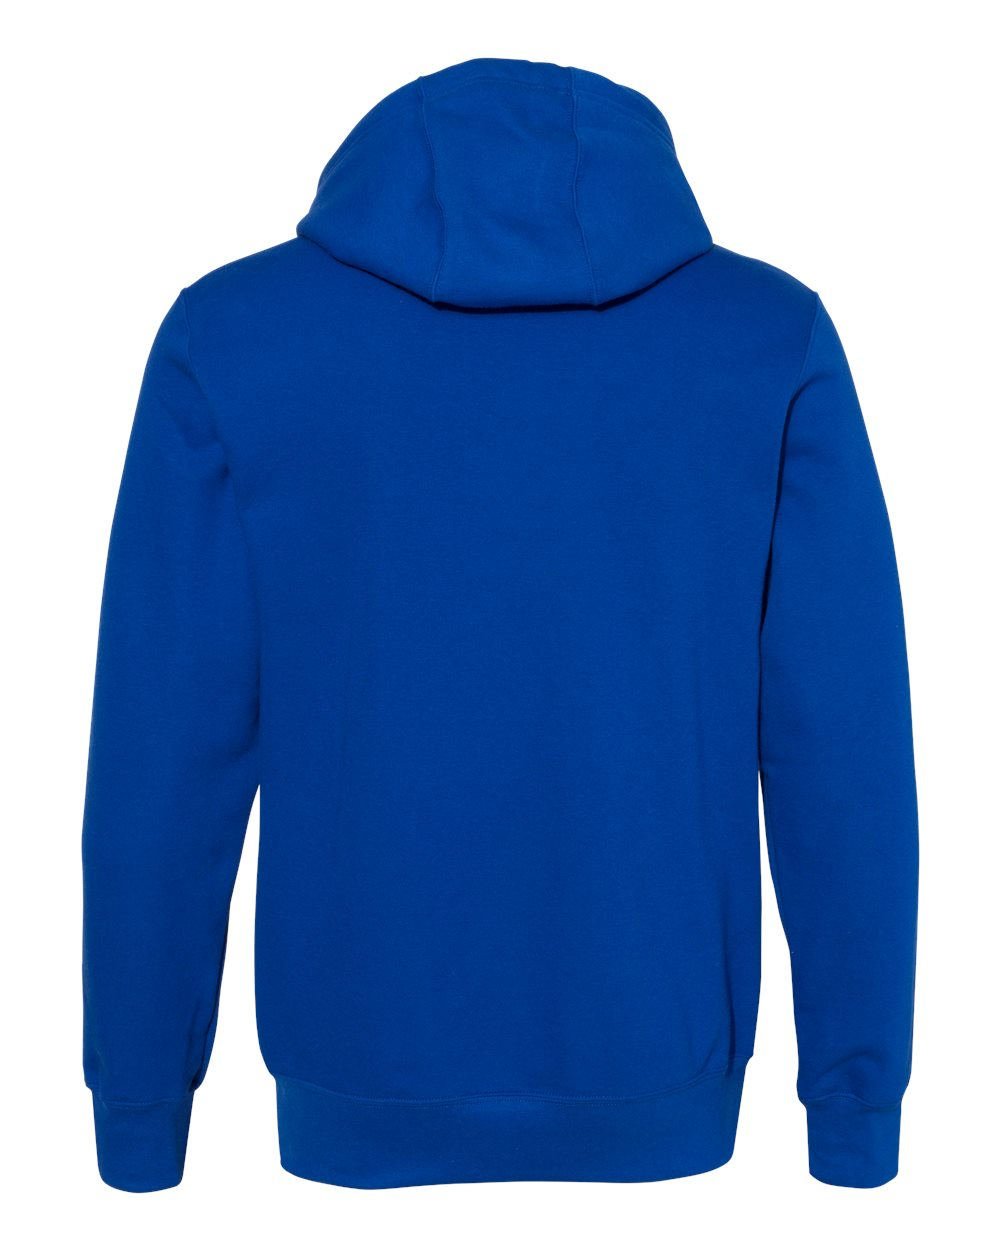 Russell-Athletic-Mens-Cotton-Rich-Fleece-Hooded-Sweatshirt-82ONSM-up-to-3XL miniature 22